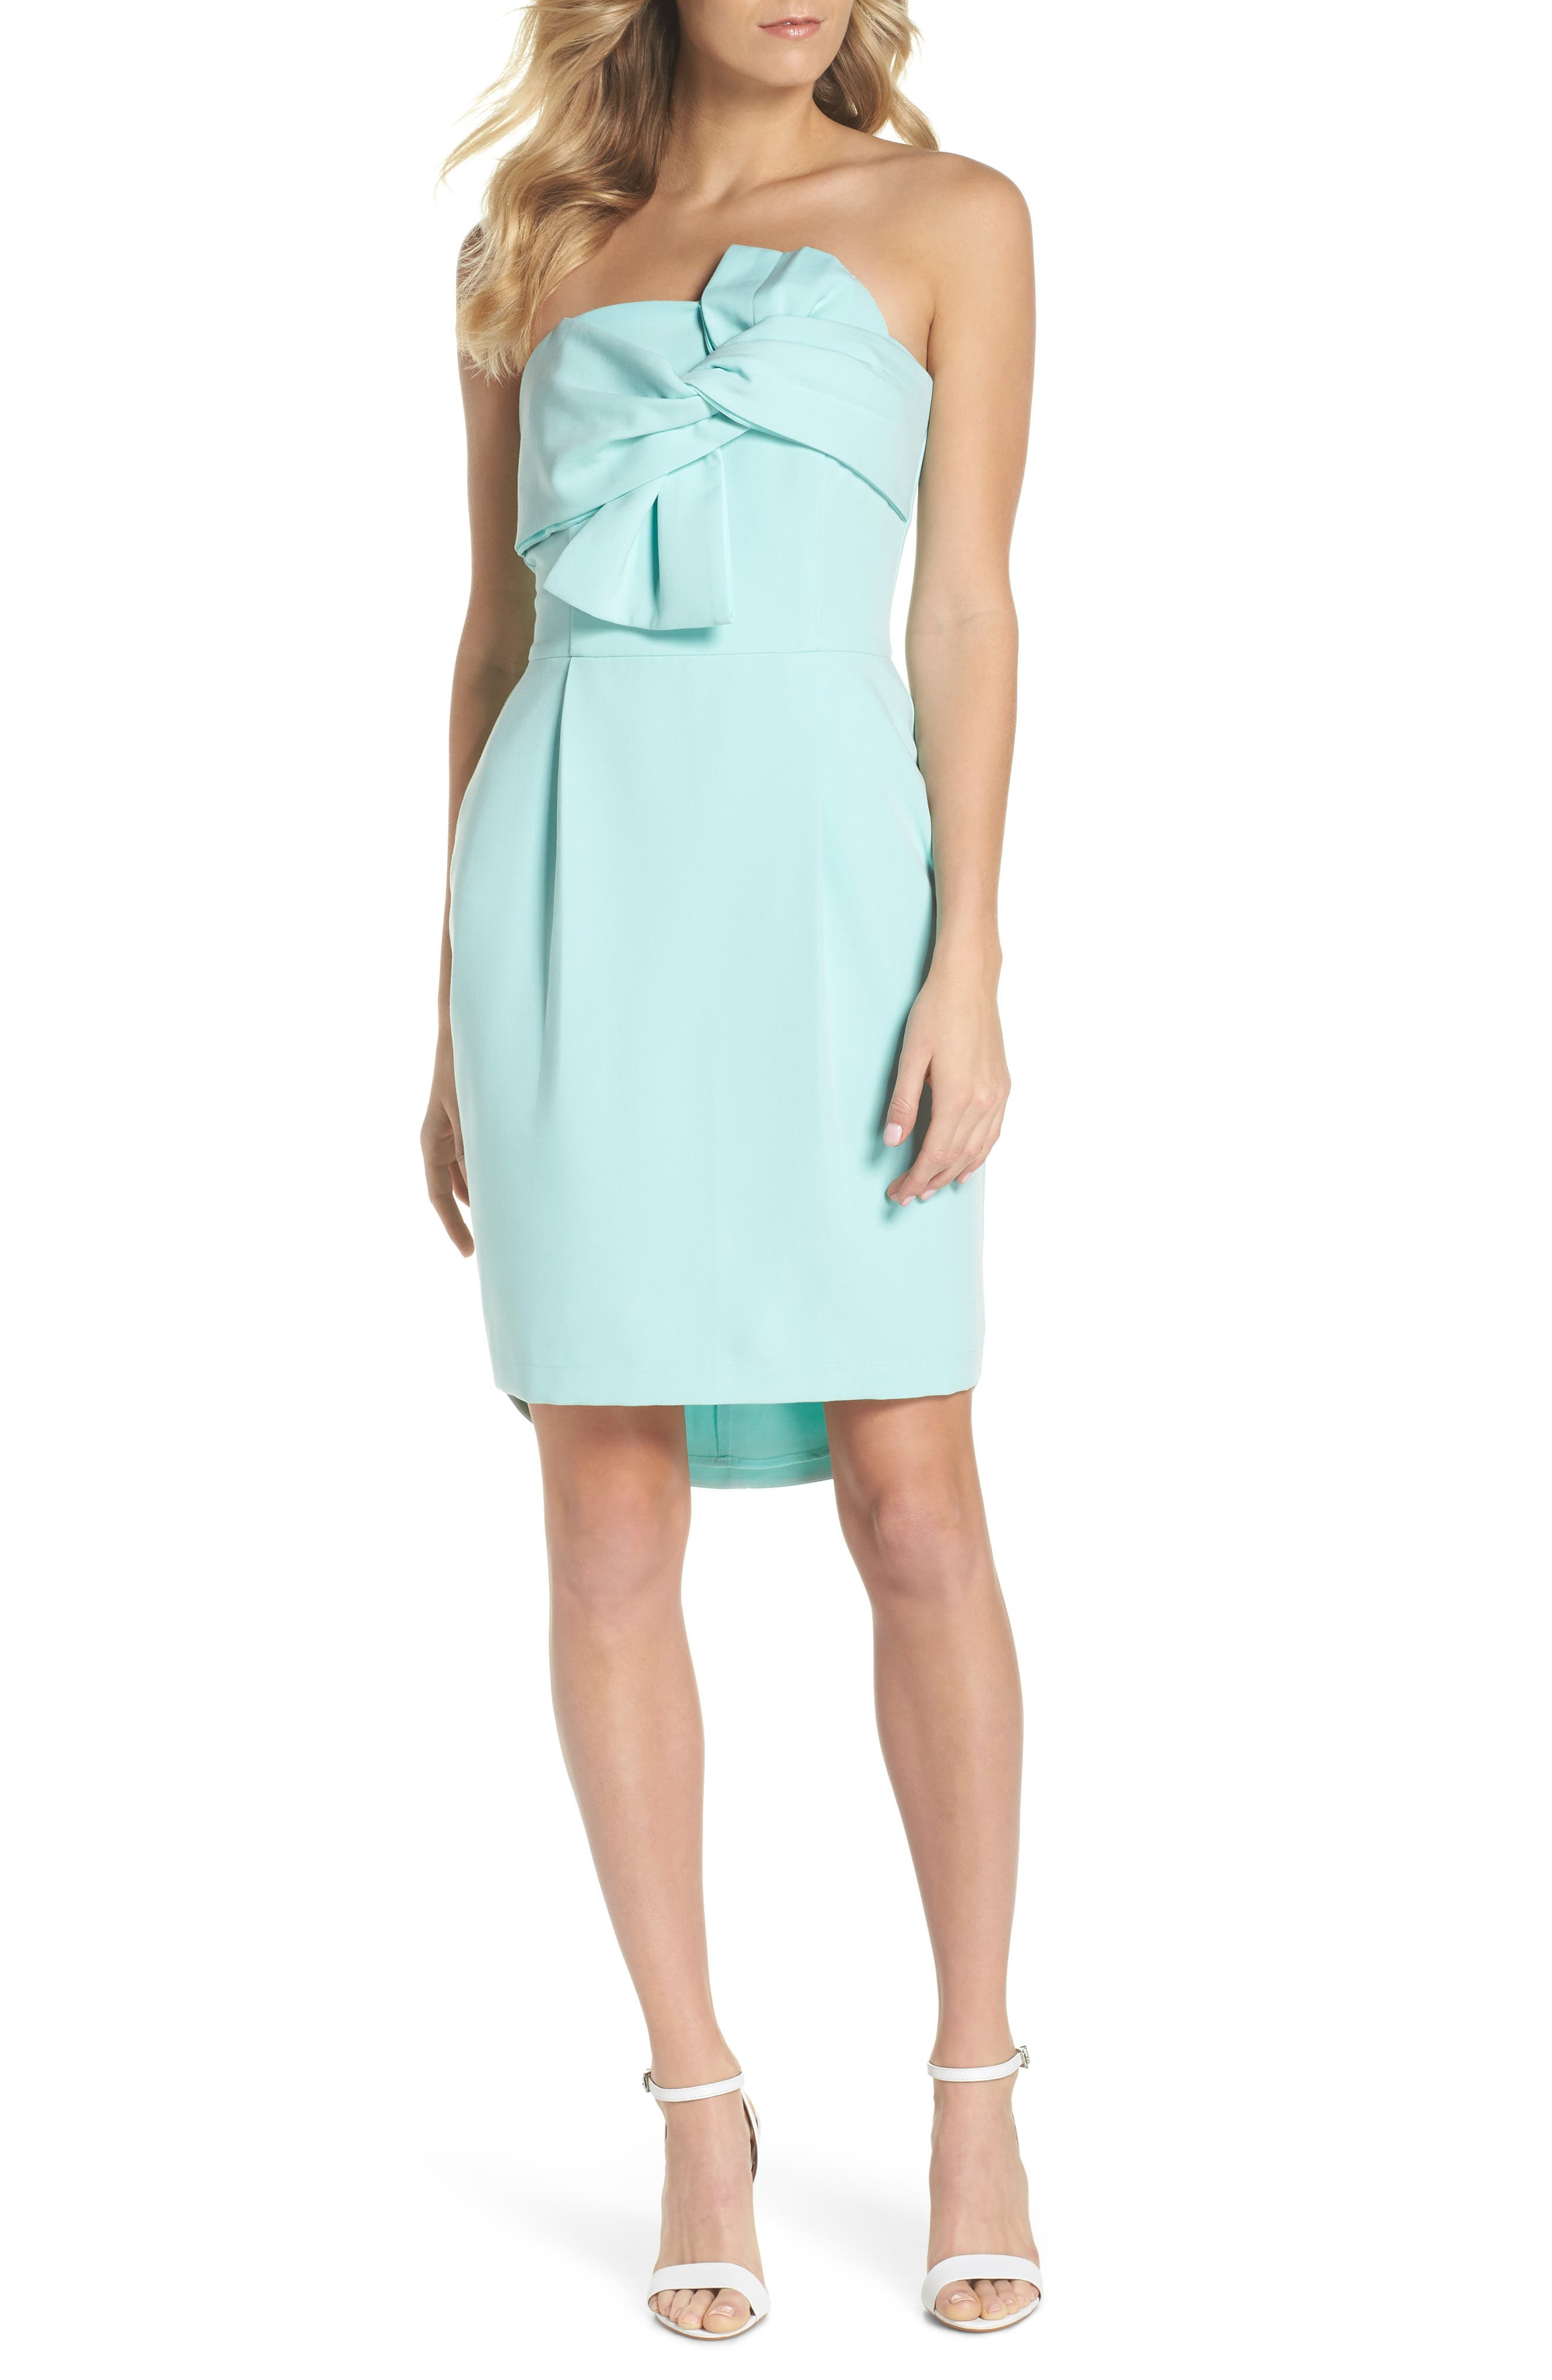 Main Image - Adelyn Rae Krissy Twist Front Strapless Dress